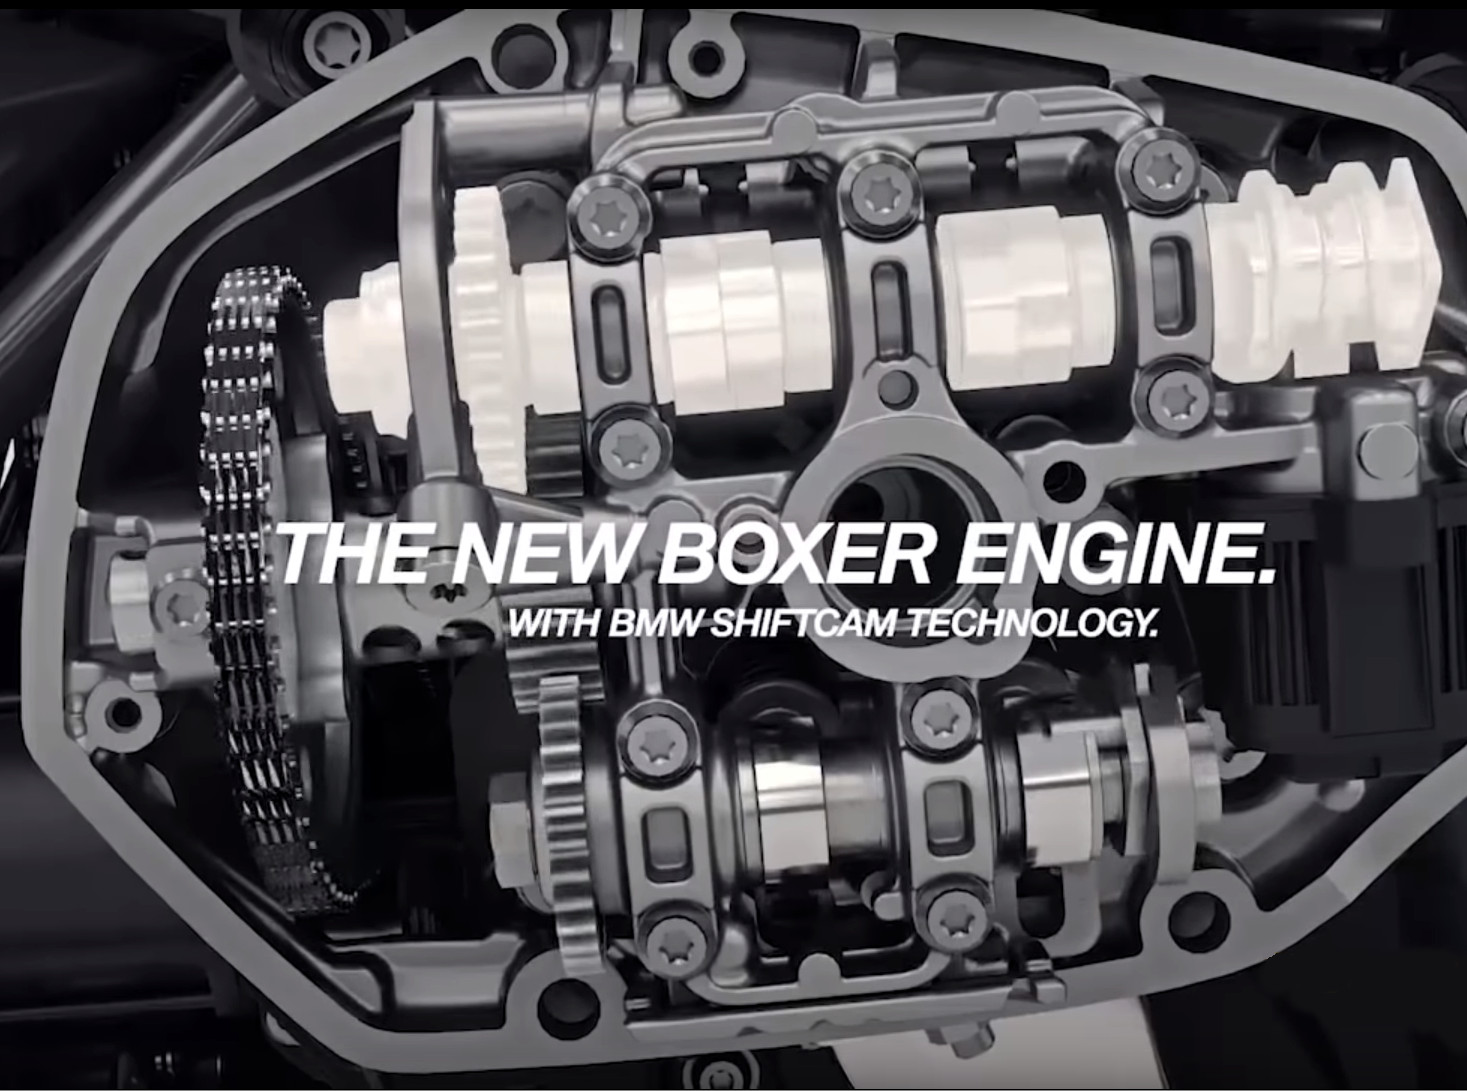 Youtube Video Reveals Bmw S New Boxer Motor With Shiftcam